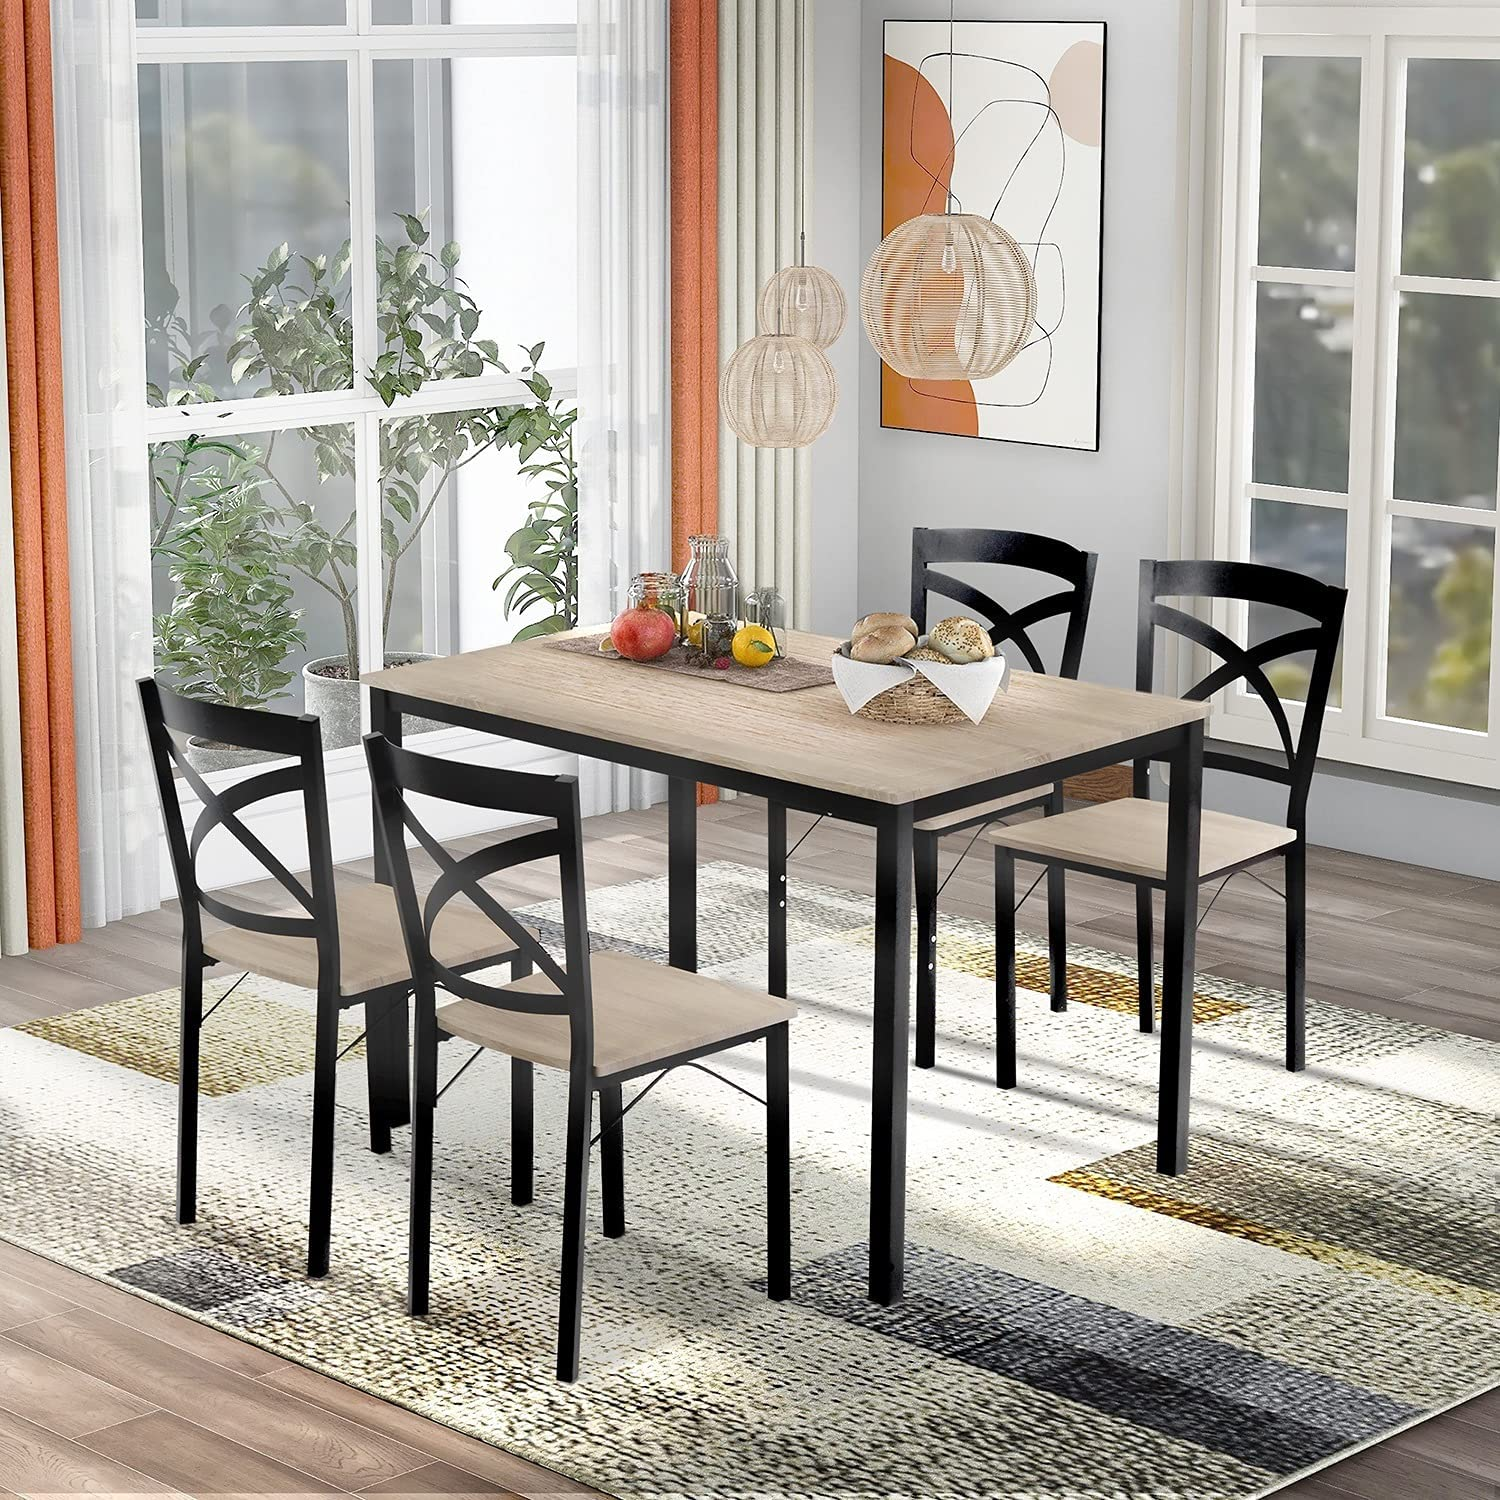 【Fast Delivery Japan's largest assortment from The Tables Indust Furniture U.S.】Kitchen Limited time trial price